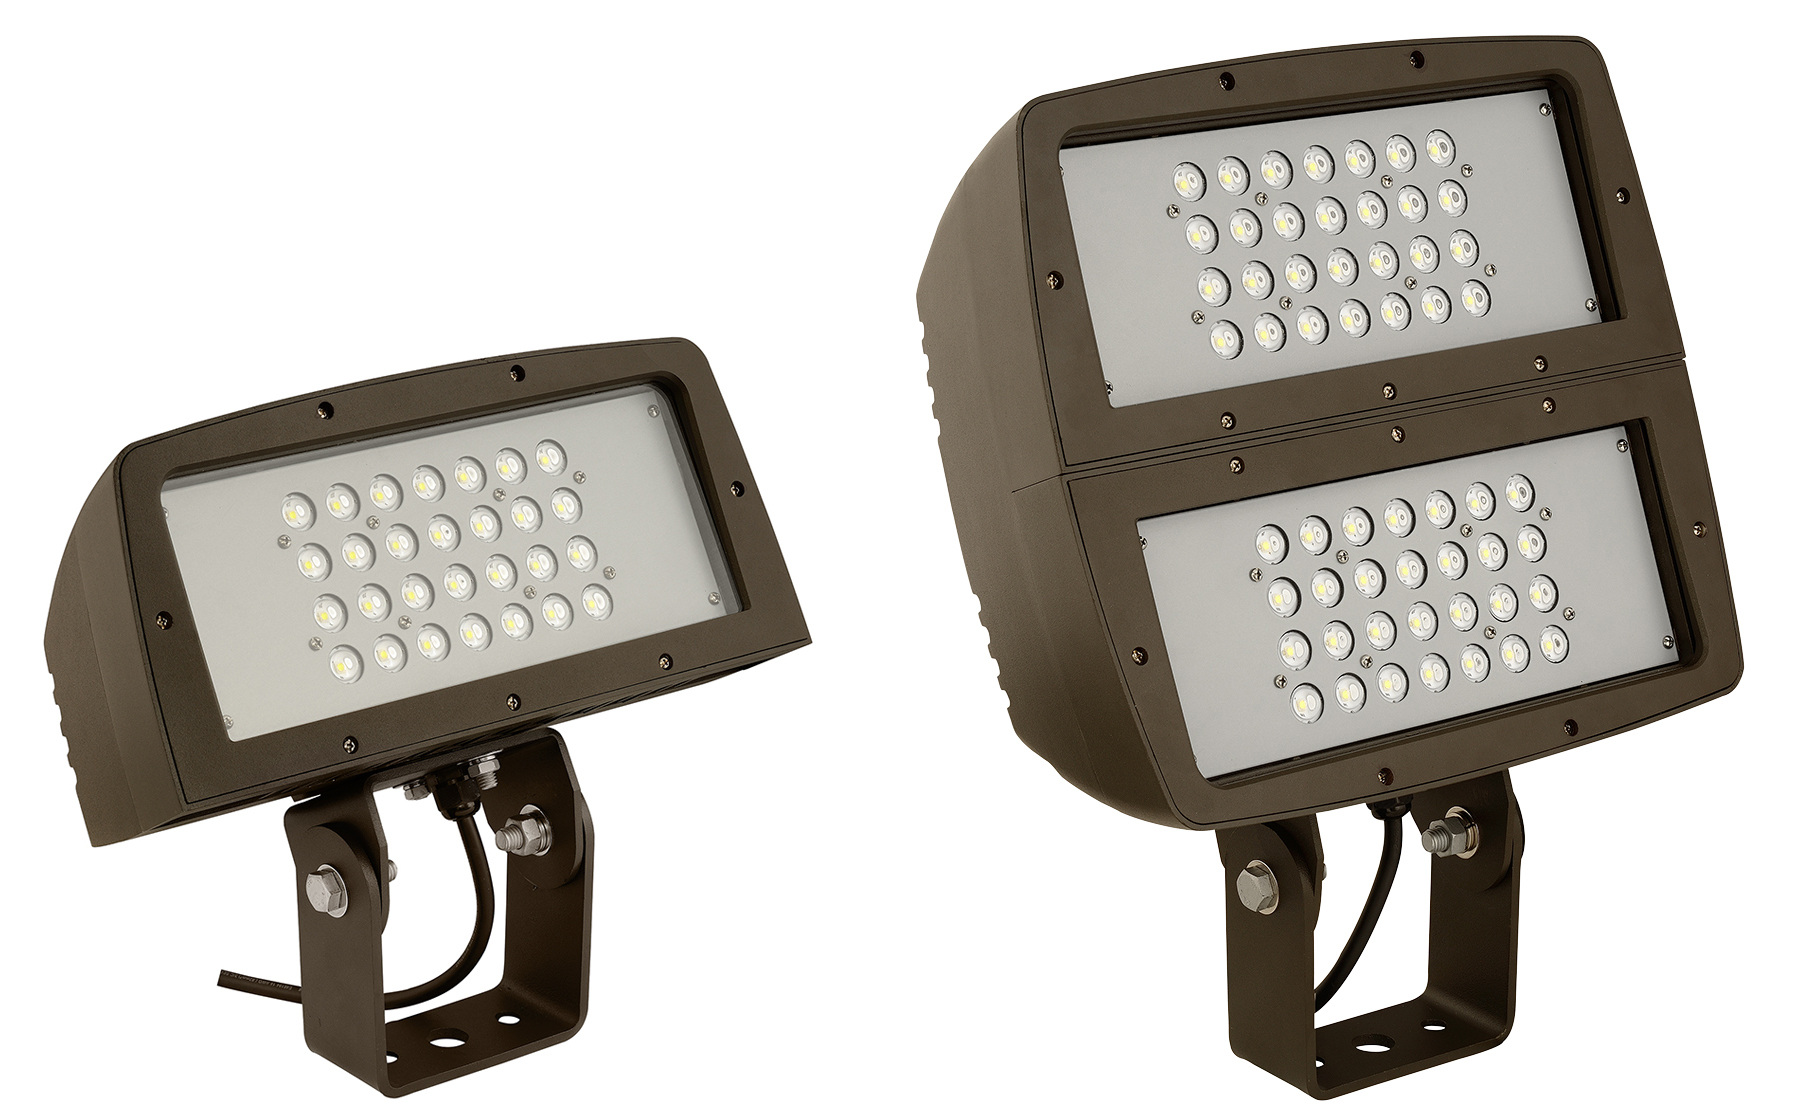 hubbell outdoor lighting wall pack photo - 6